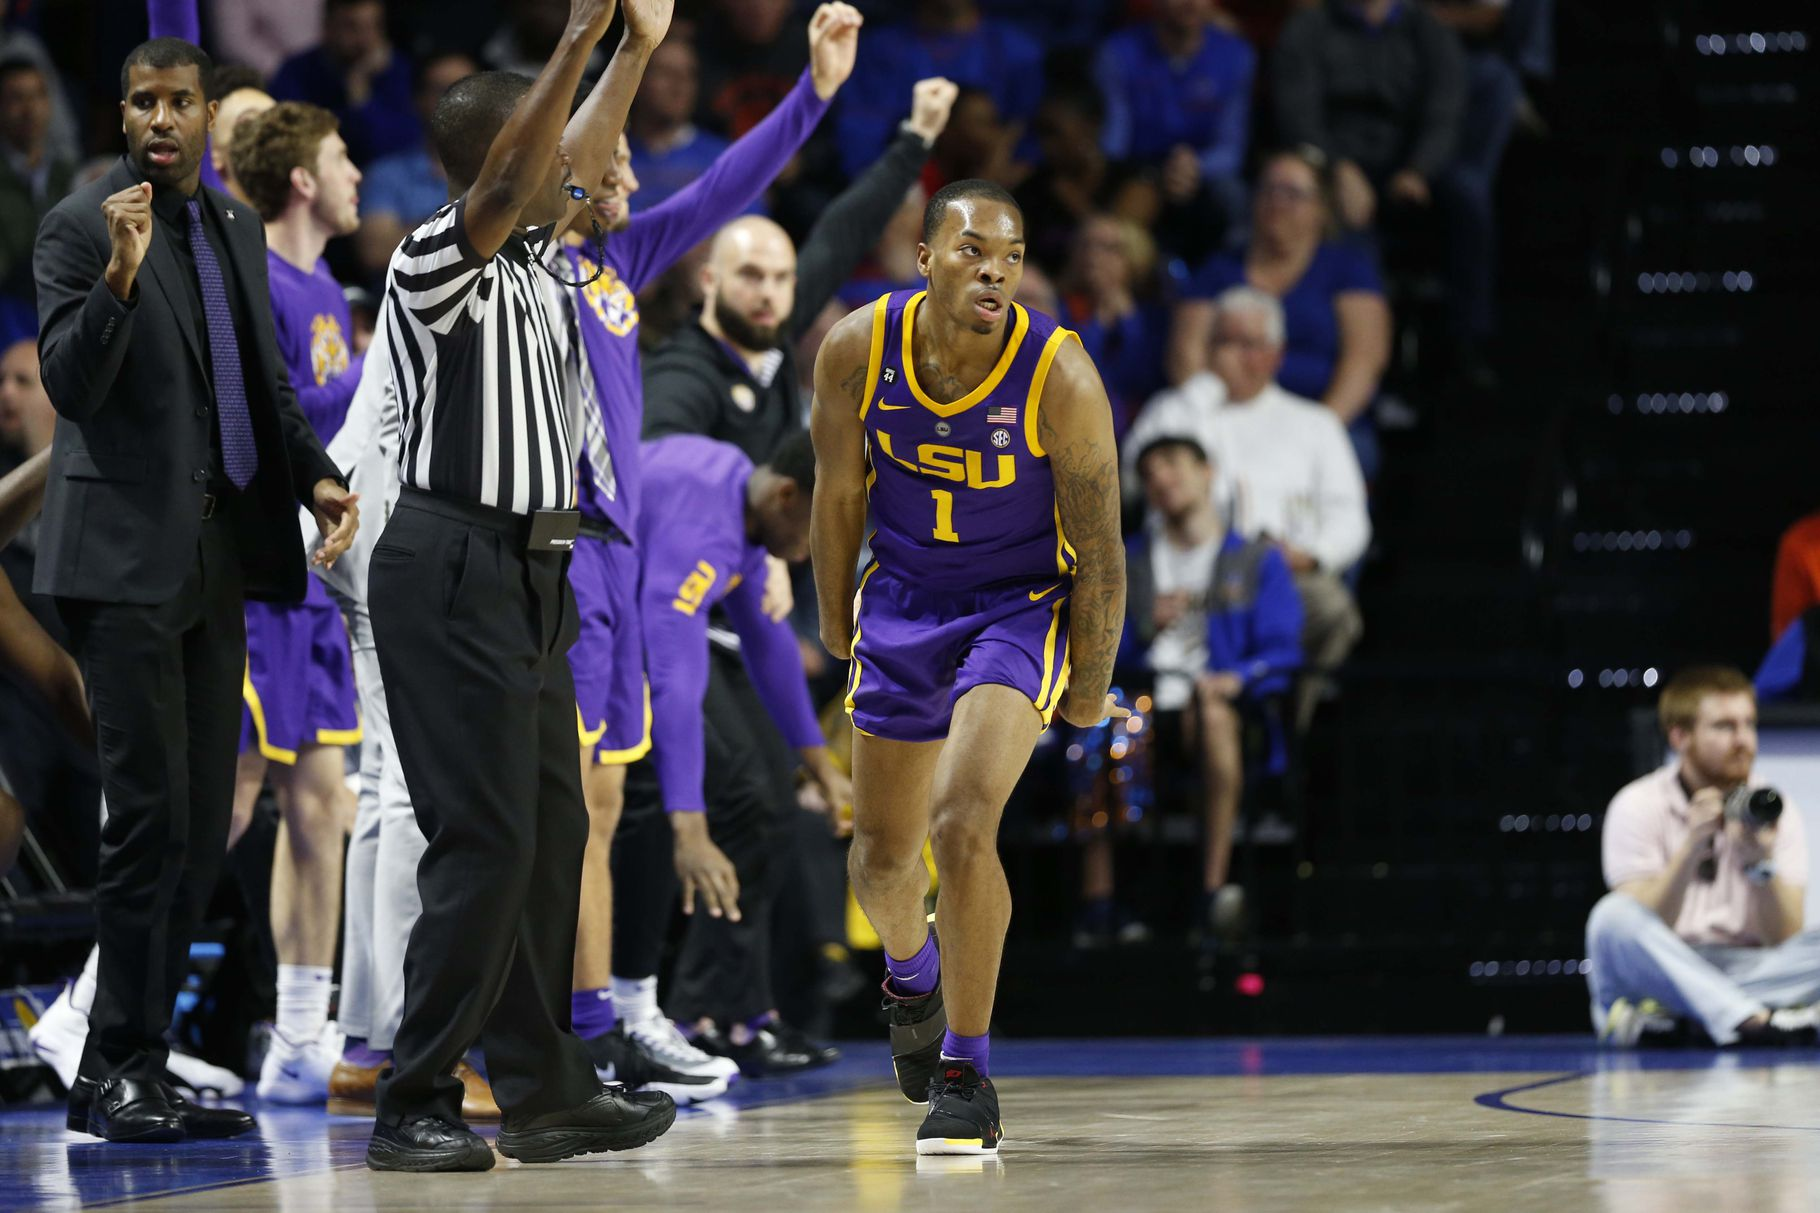 LSU bracing for up-tempo, experienced Yale team